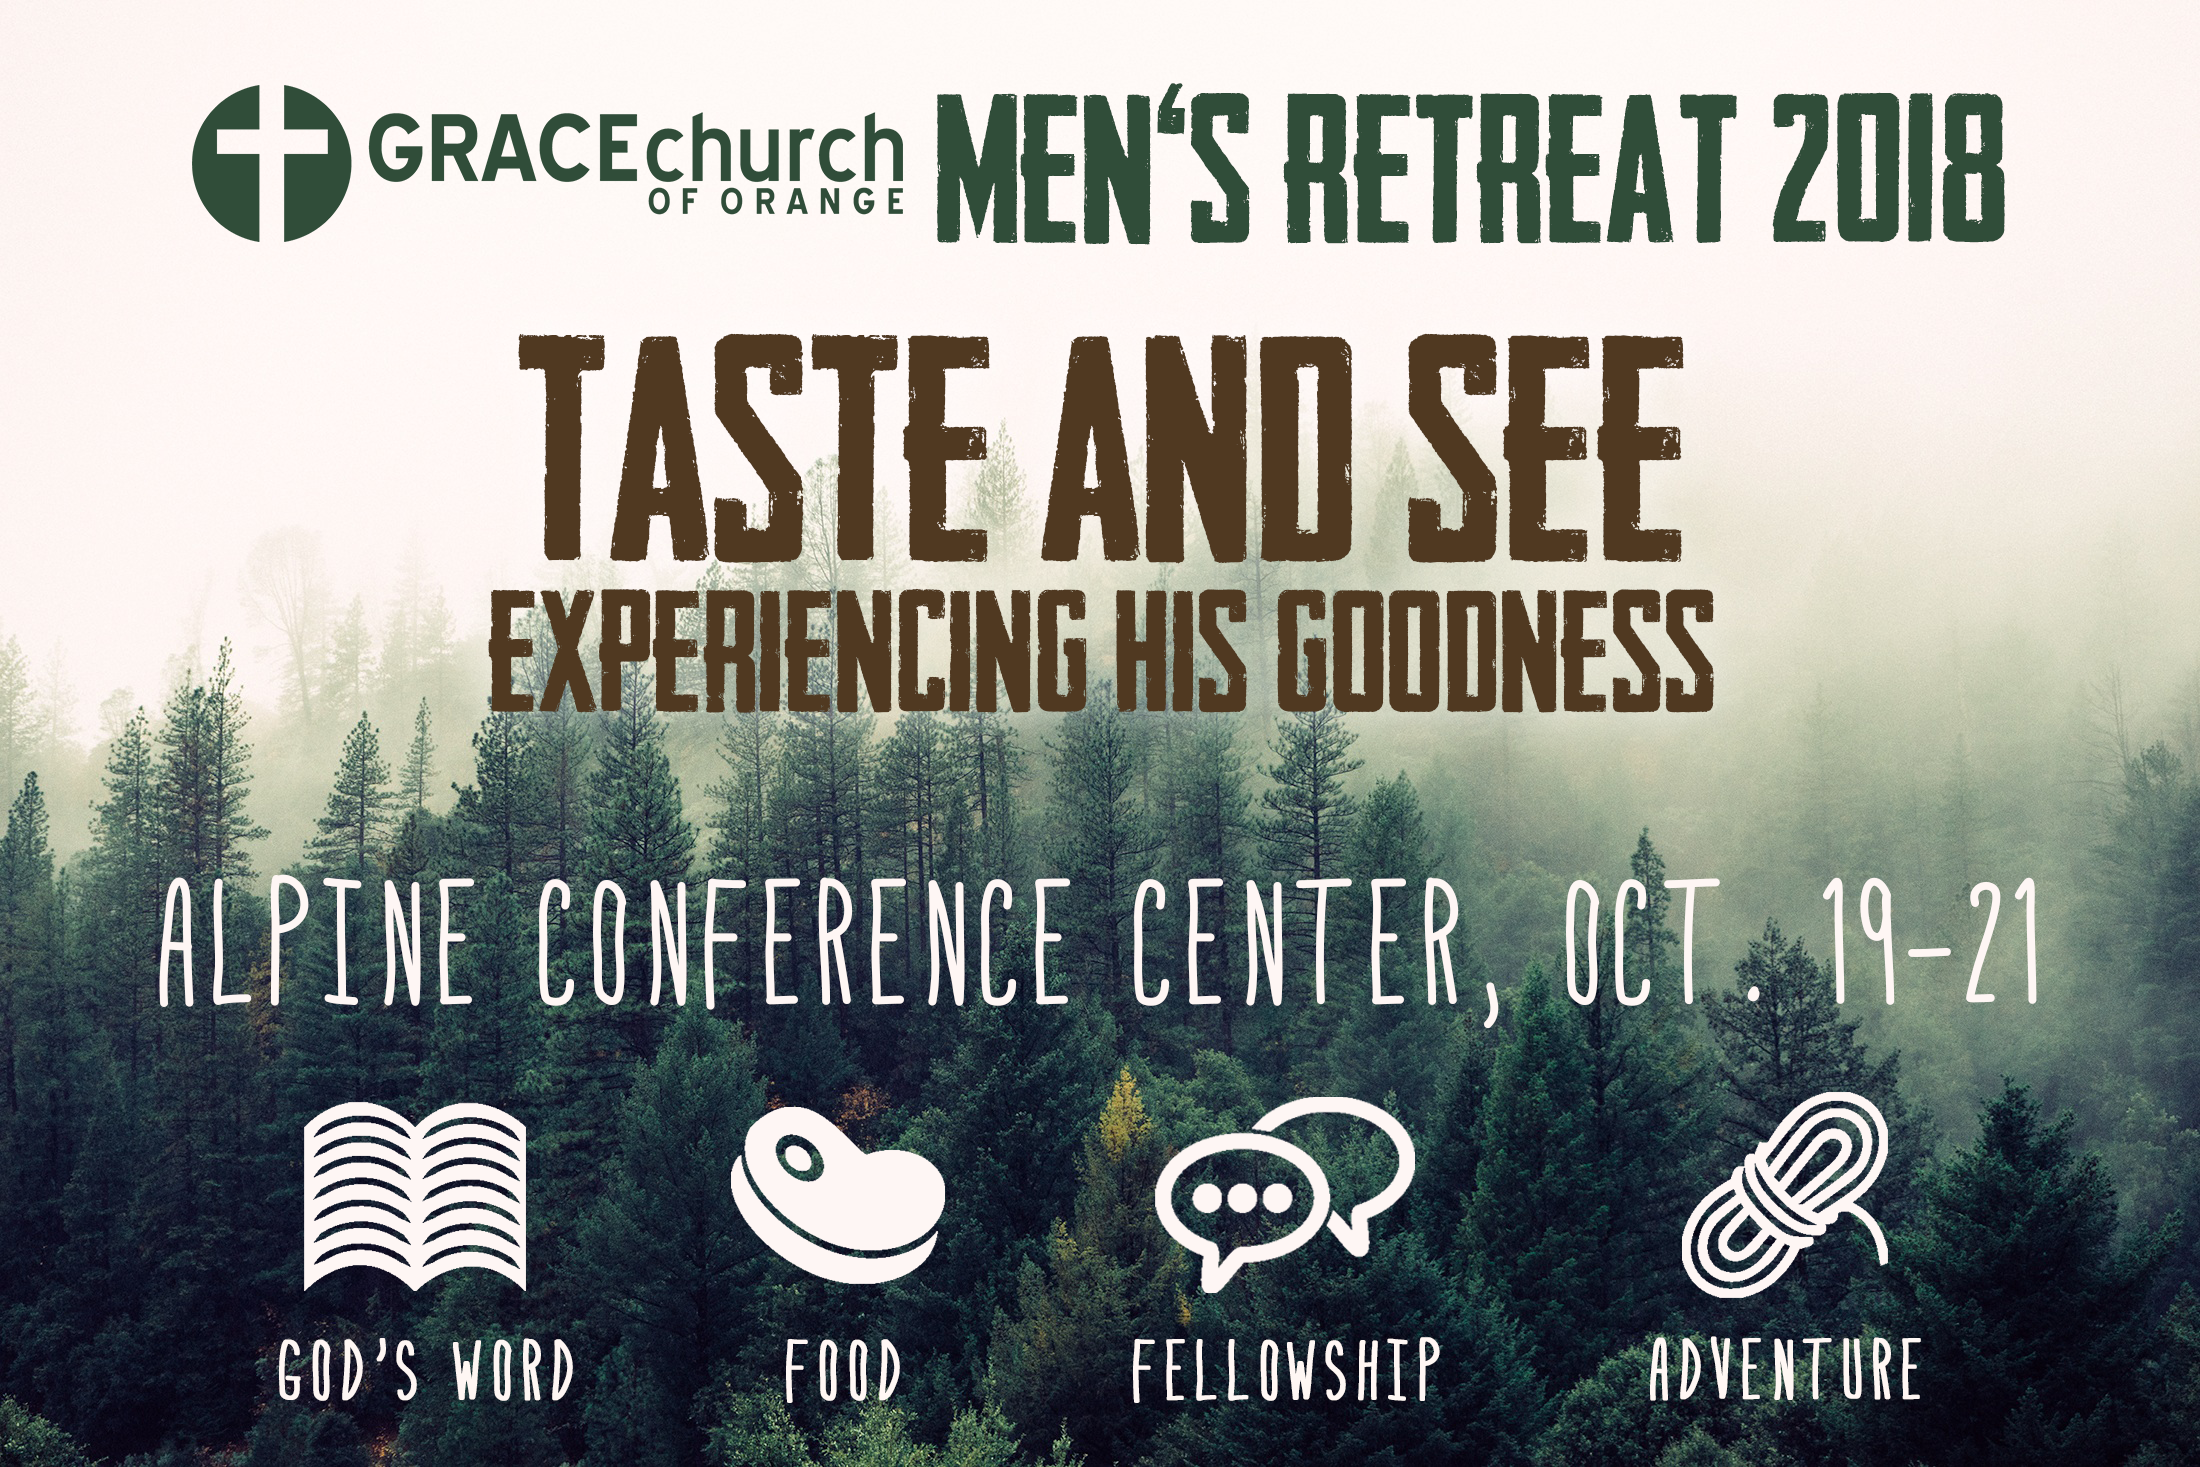 Mens retreat 2018